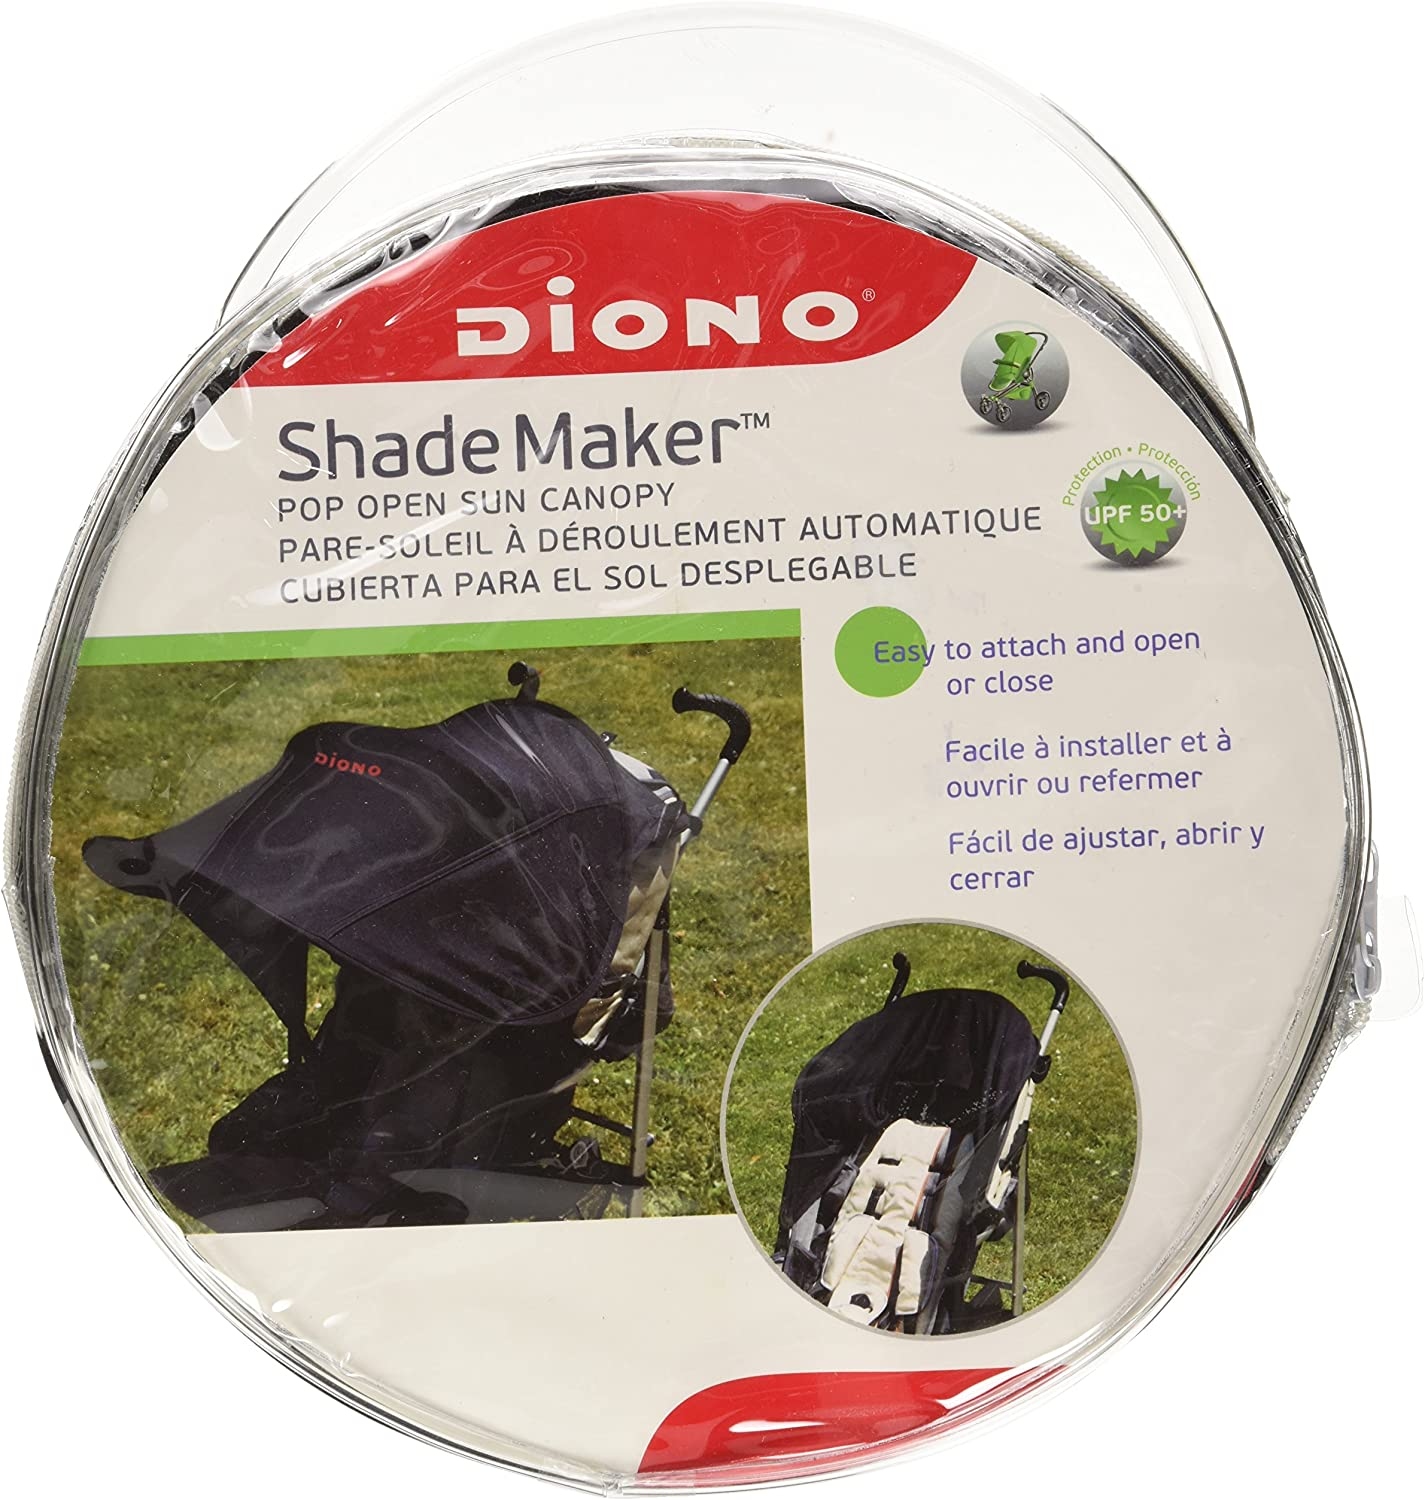 Shade Maker Canopy Diono Grand Canopy pour Poussette